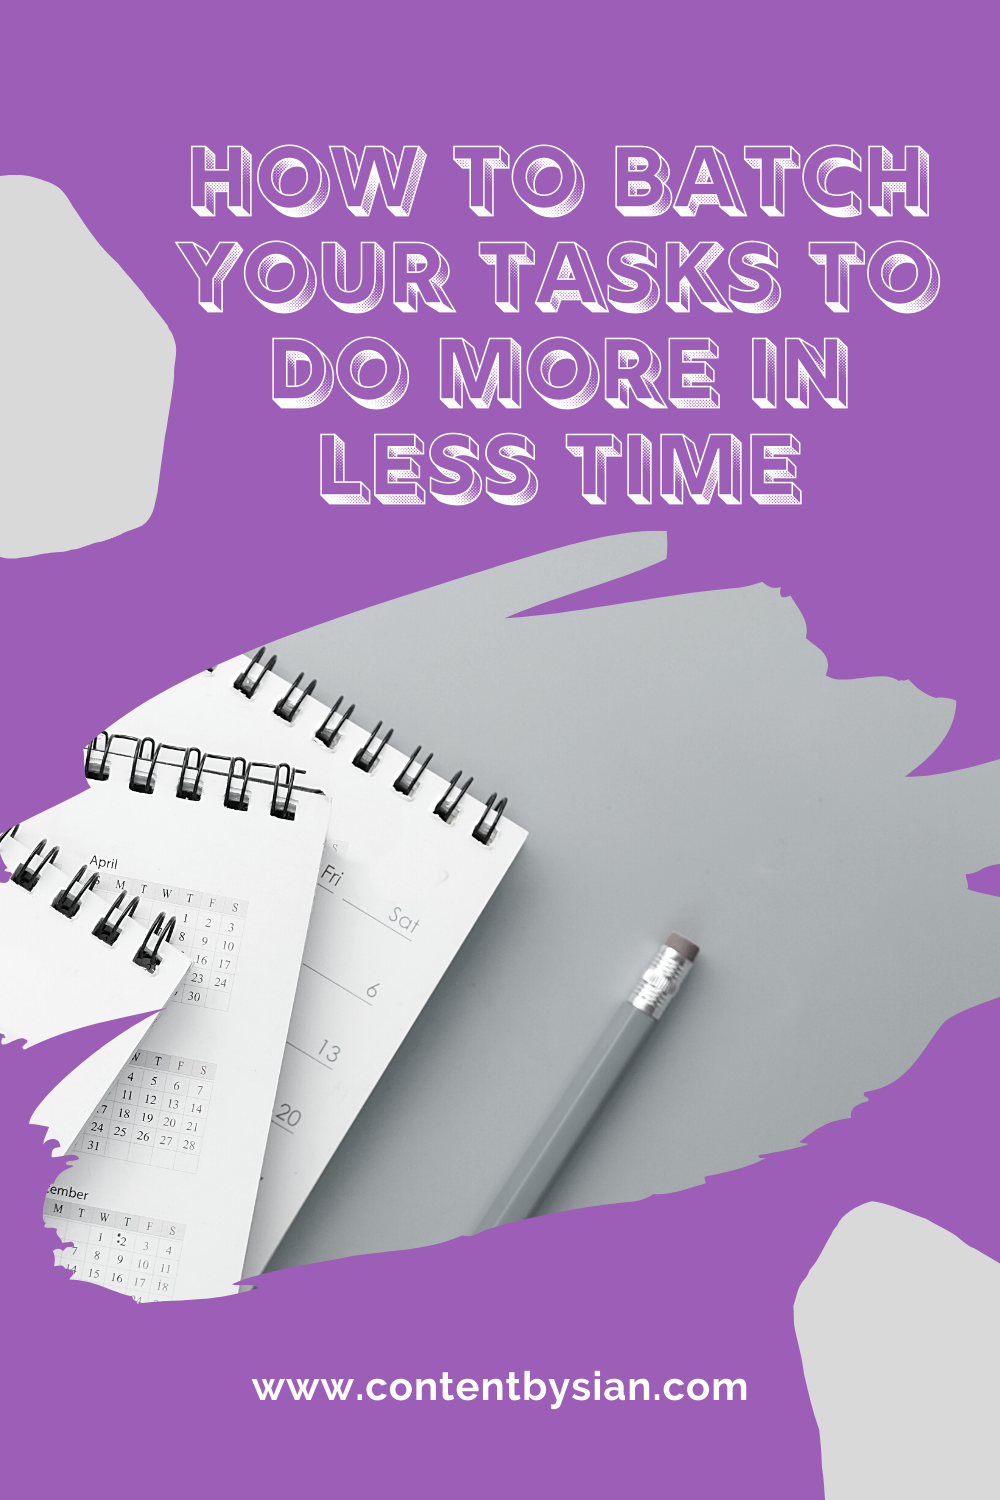 how-to-batch-your-tasks-to-do-more-in-less-time-pinterest